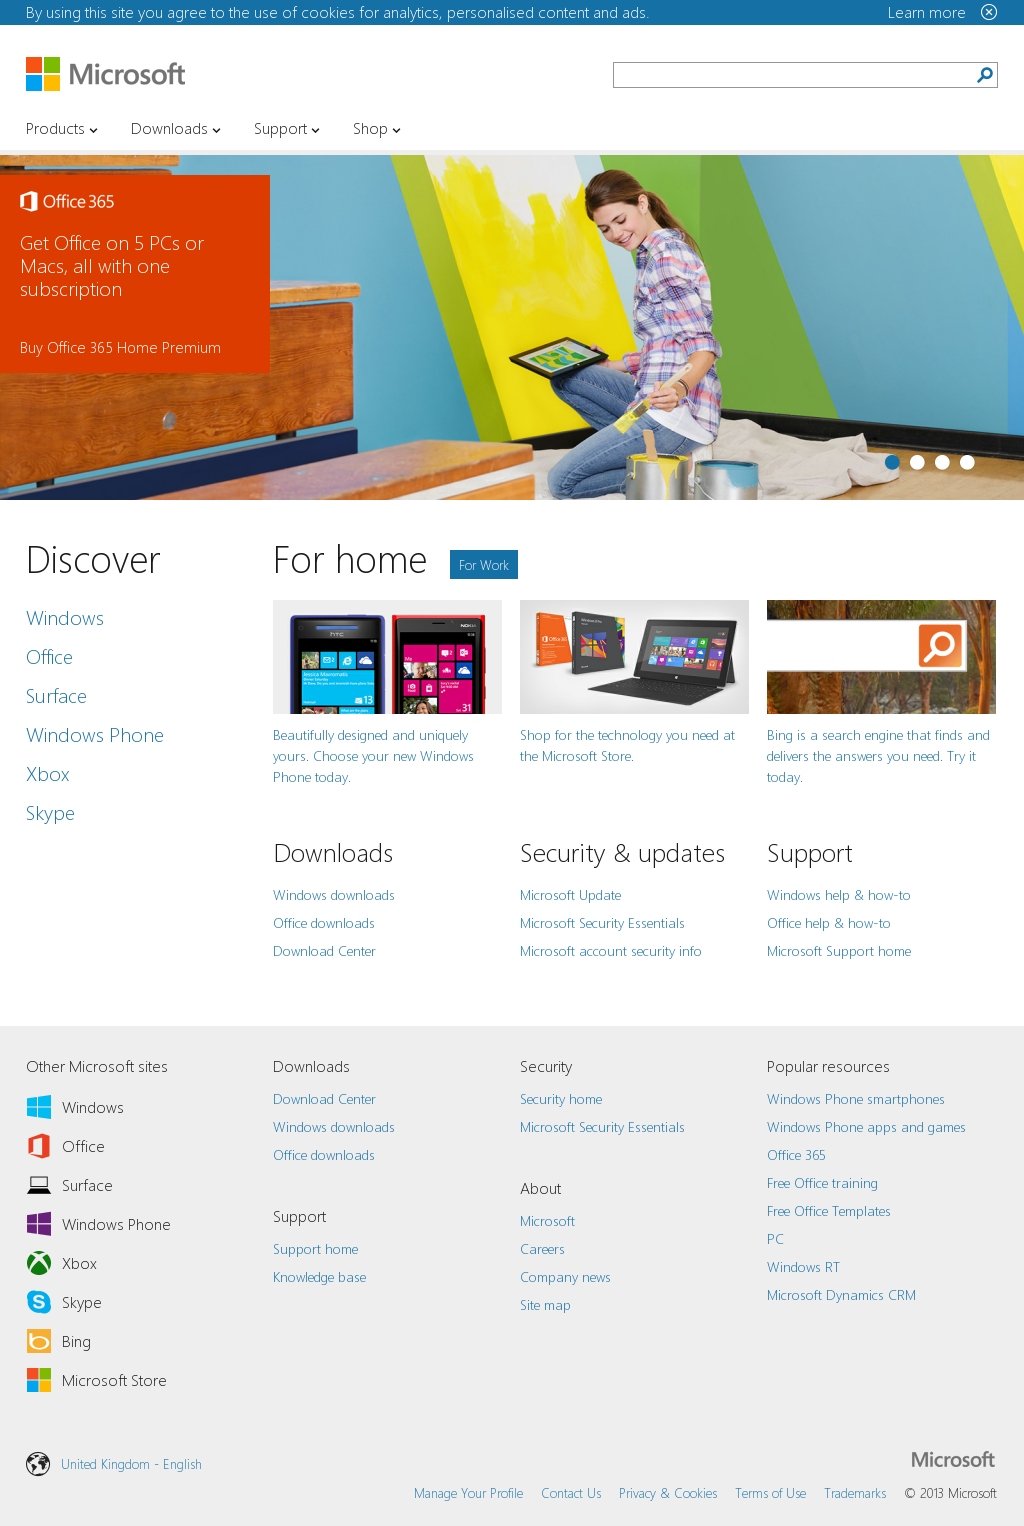 Website Http Www Microsoft Com En Gb Default Aspx Snapped On Snapito Windows Surface Microsoft Web Design